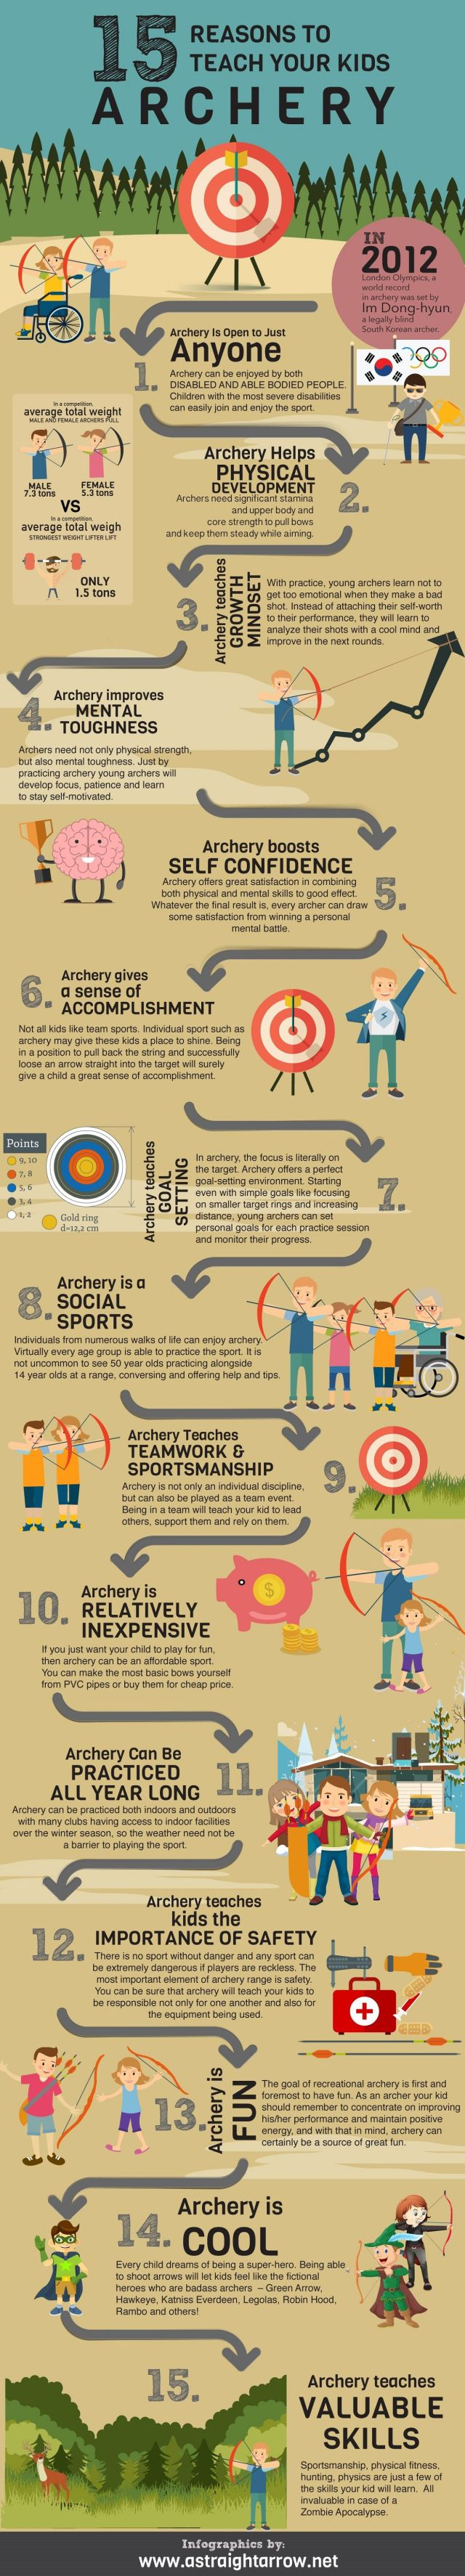 15 Reasons to Teach Your Kids Archery #Infographic